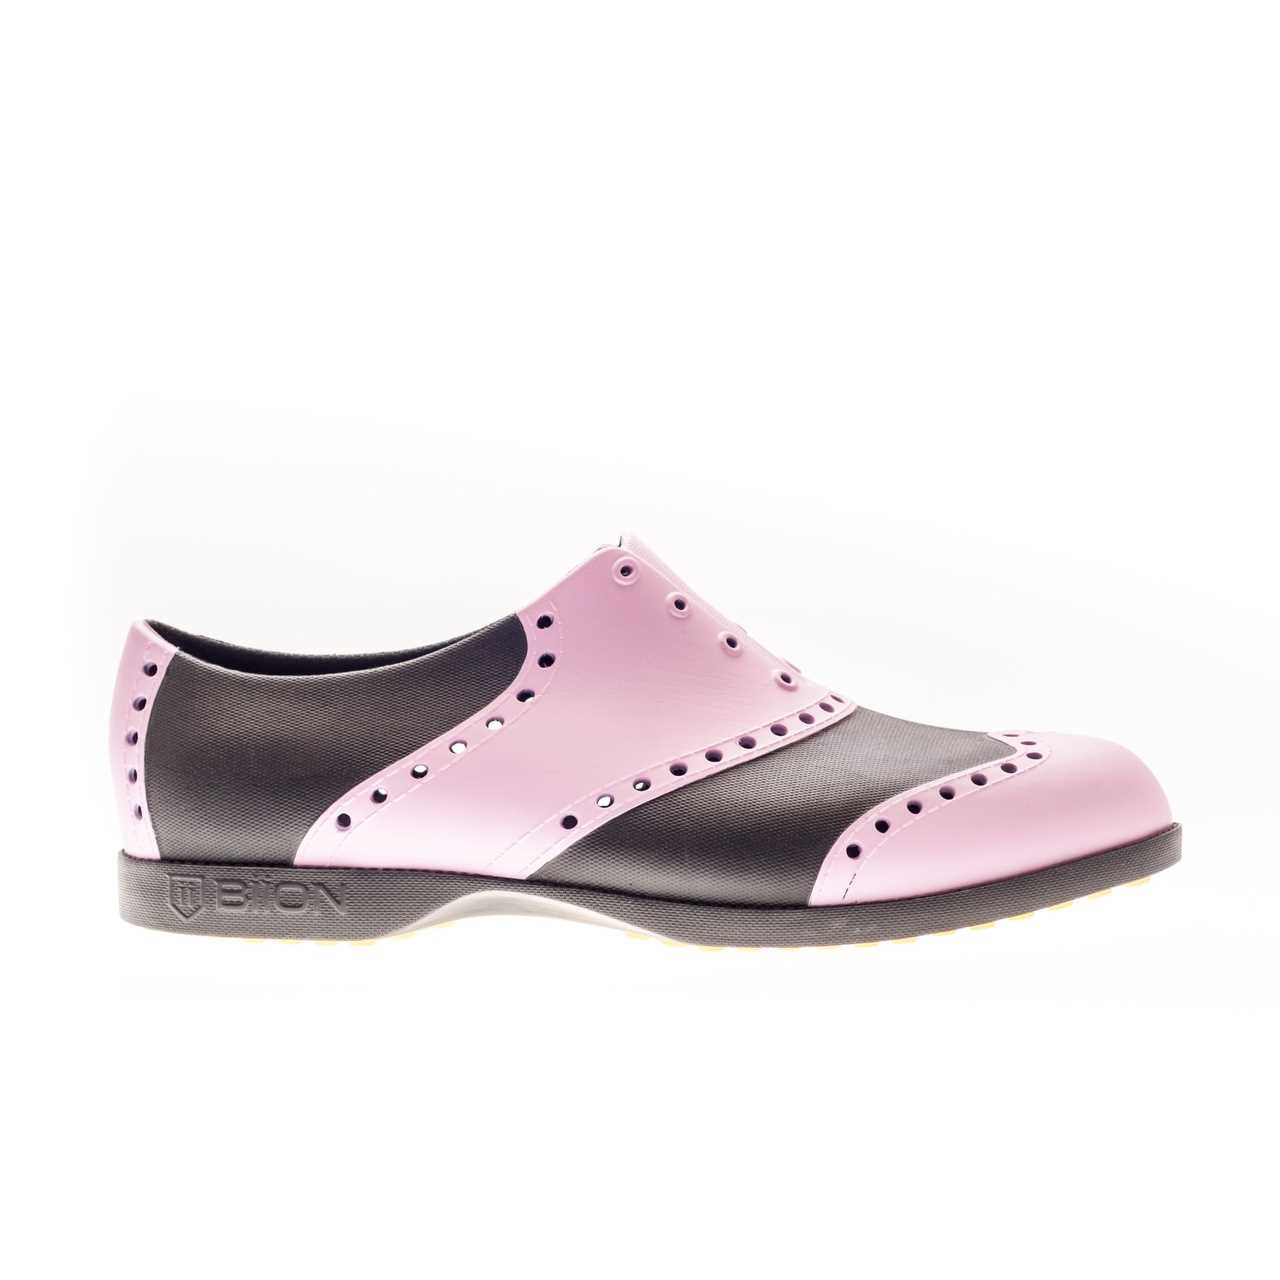 Biion classic unisex golf shoes black pink for Classic house golf shoes